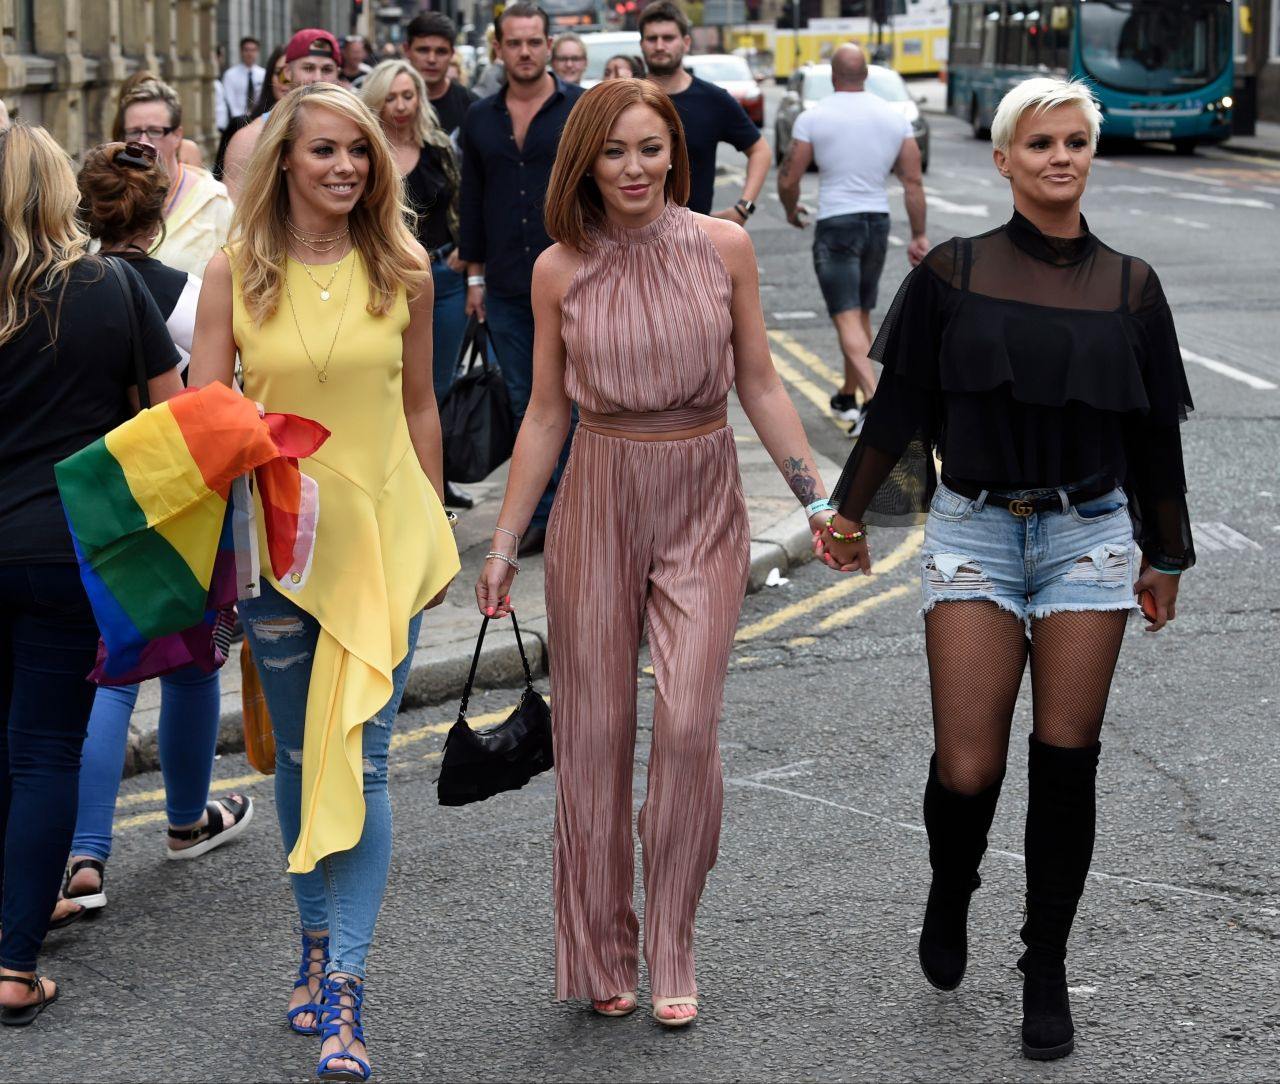 Atomic kitten pose for pictures in liverpool - 2019 year